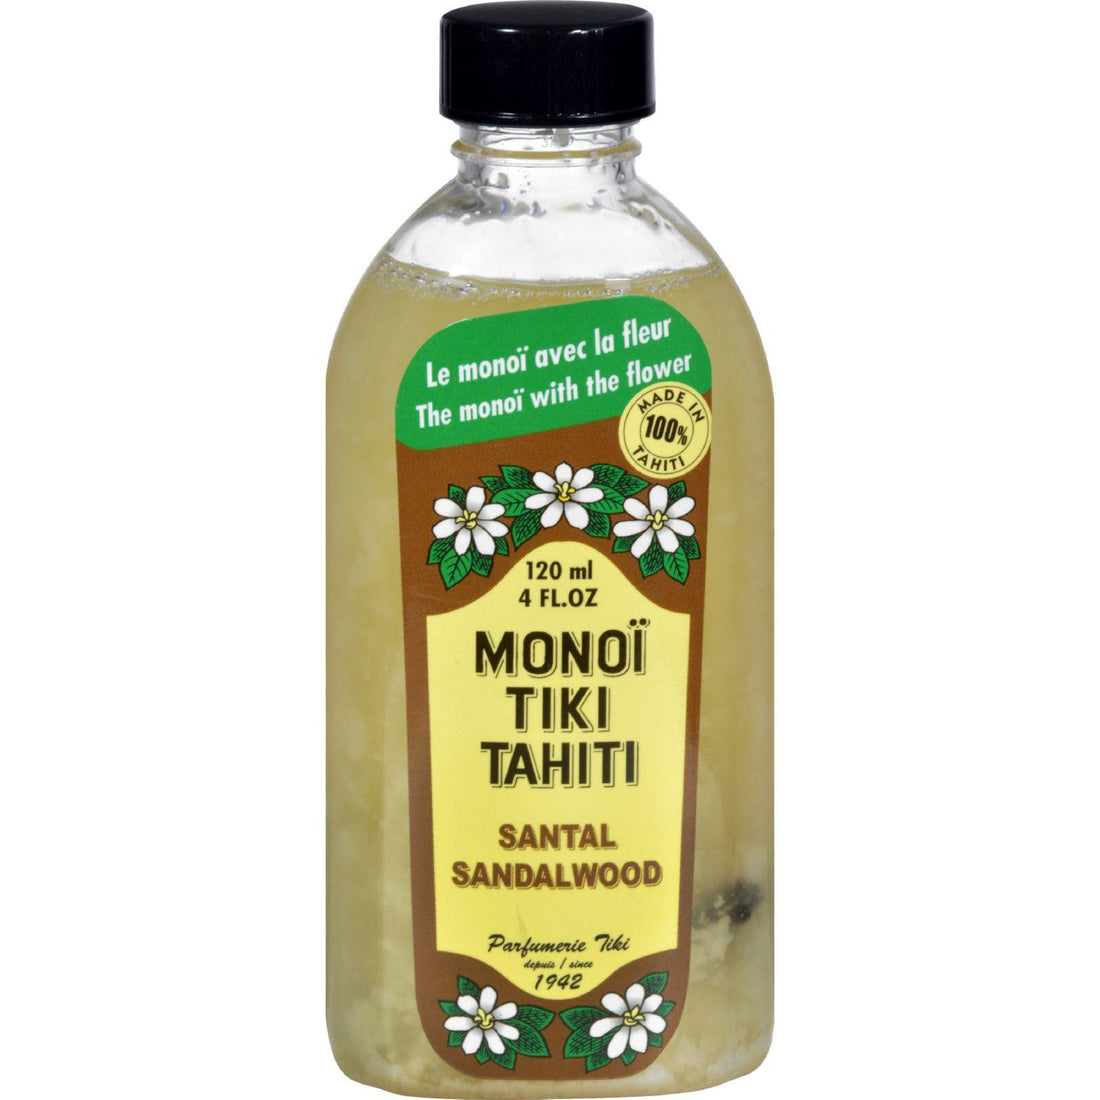 Mother Mantis: Monoi Tiare Tahiti Santal Sandalwood Coconut Oil - 4 Fl Oz Monoi